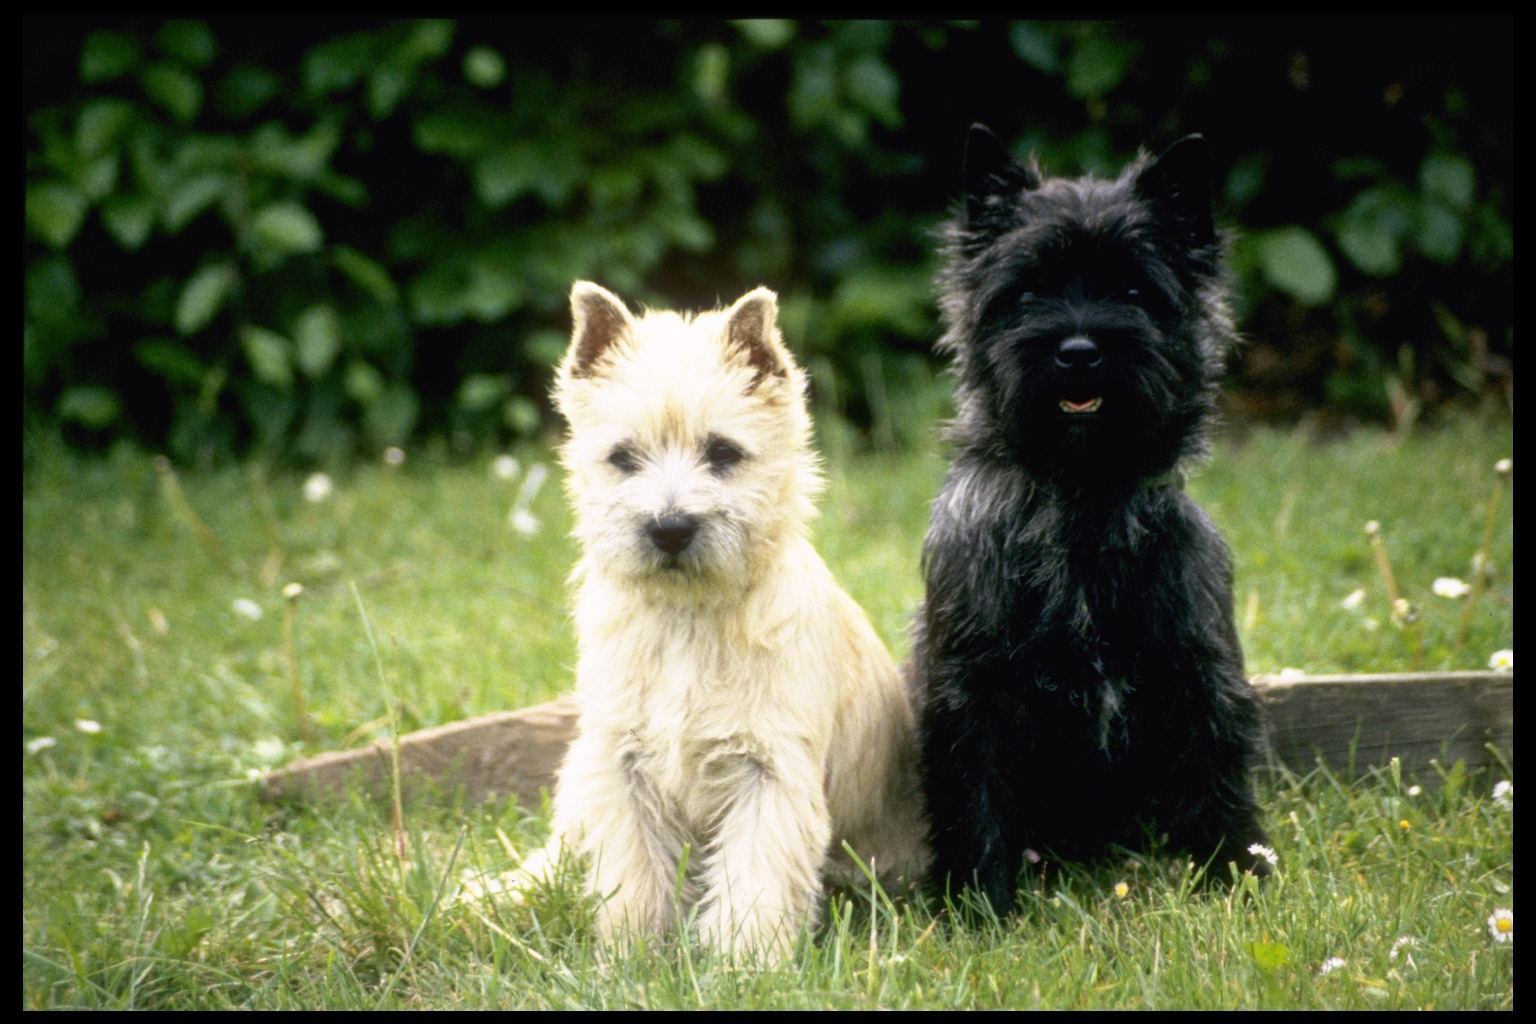 White Cairn Terrier Puppy Gallery of Cairn Terri...